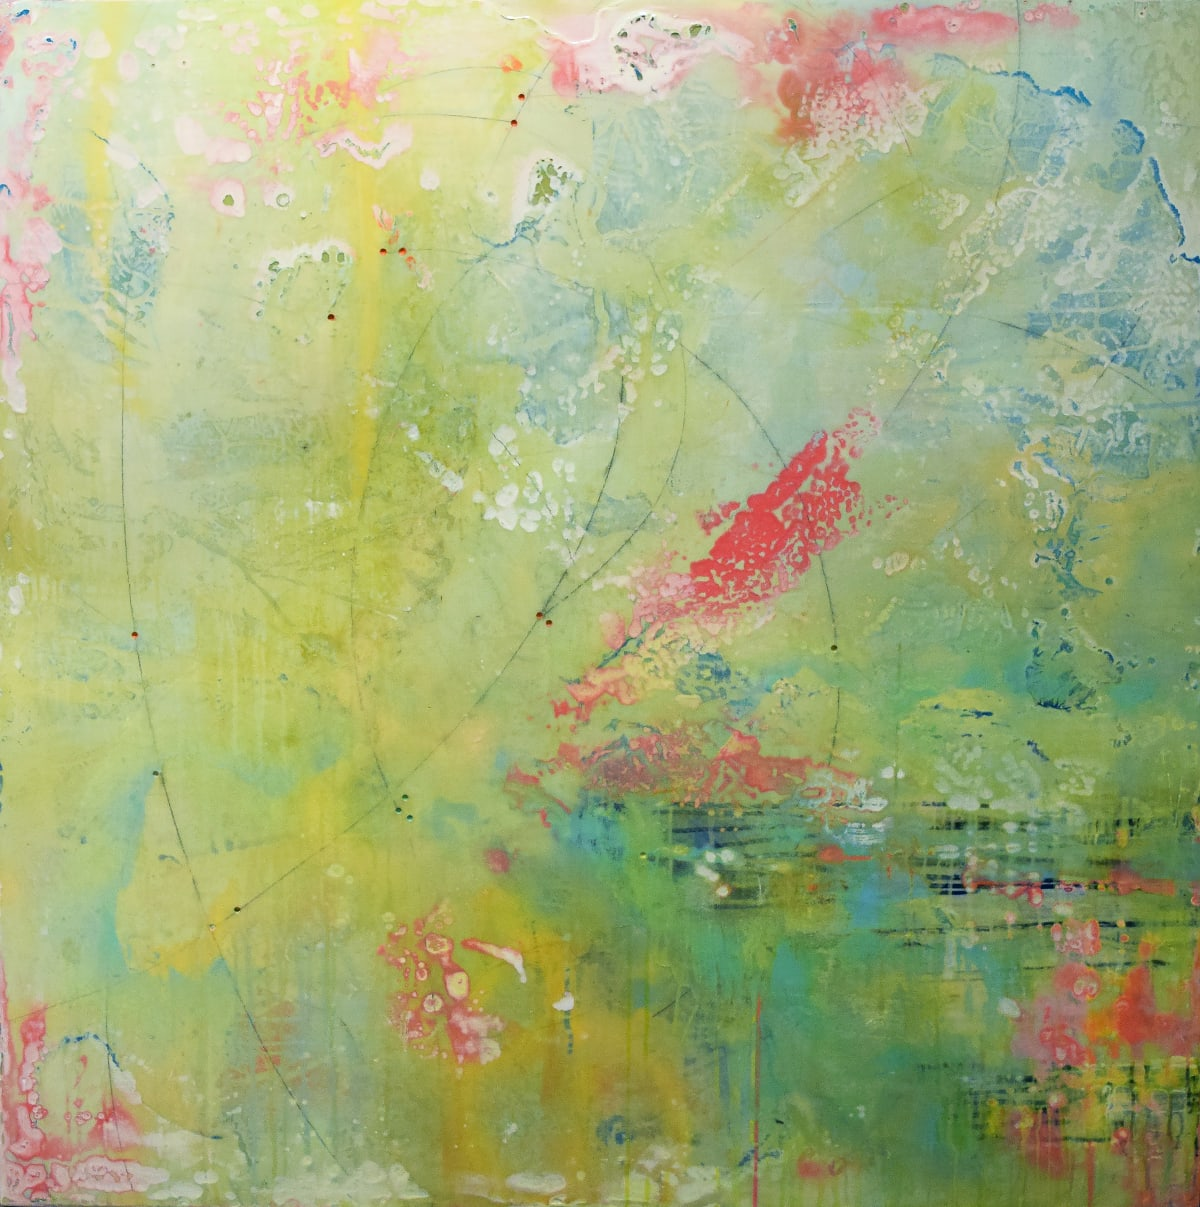 Mary Rousseaux Series 52 #12 Mixed media on panel 48 x 48 unframed